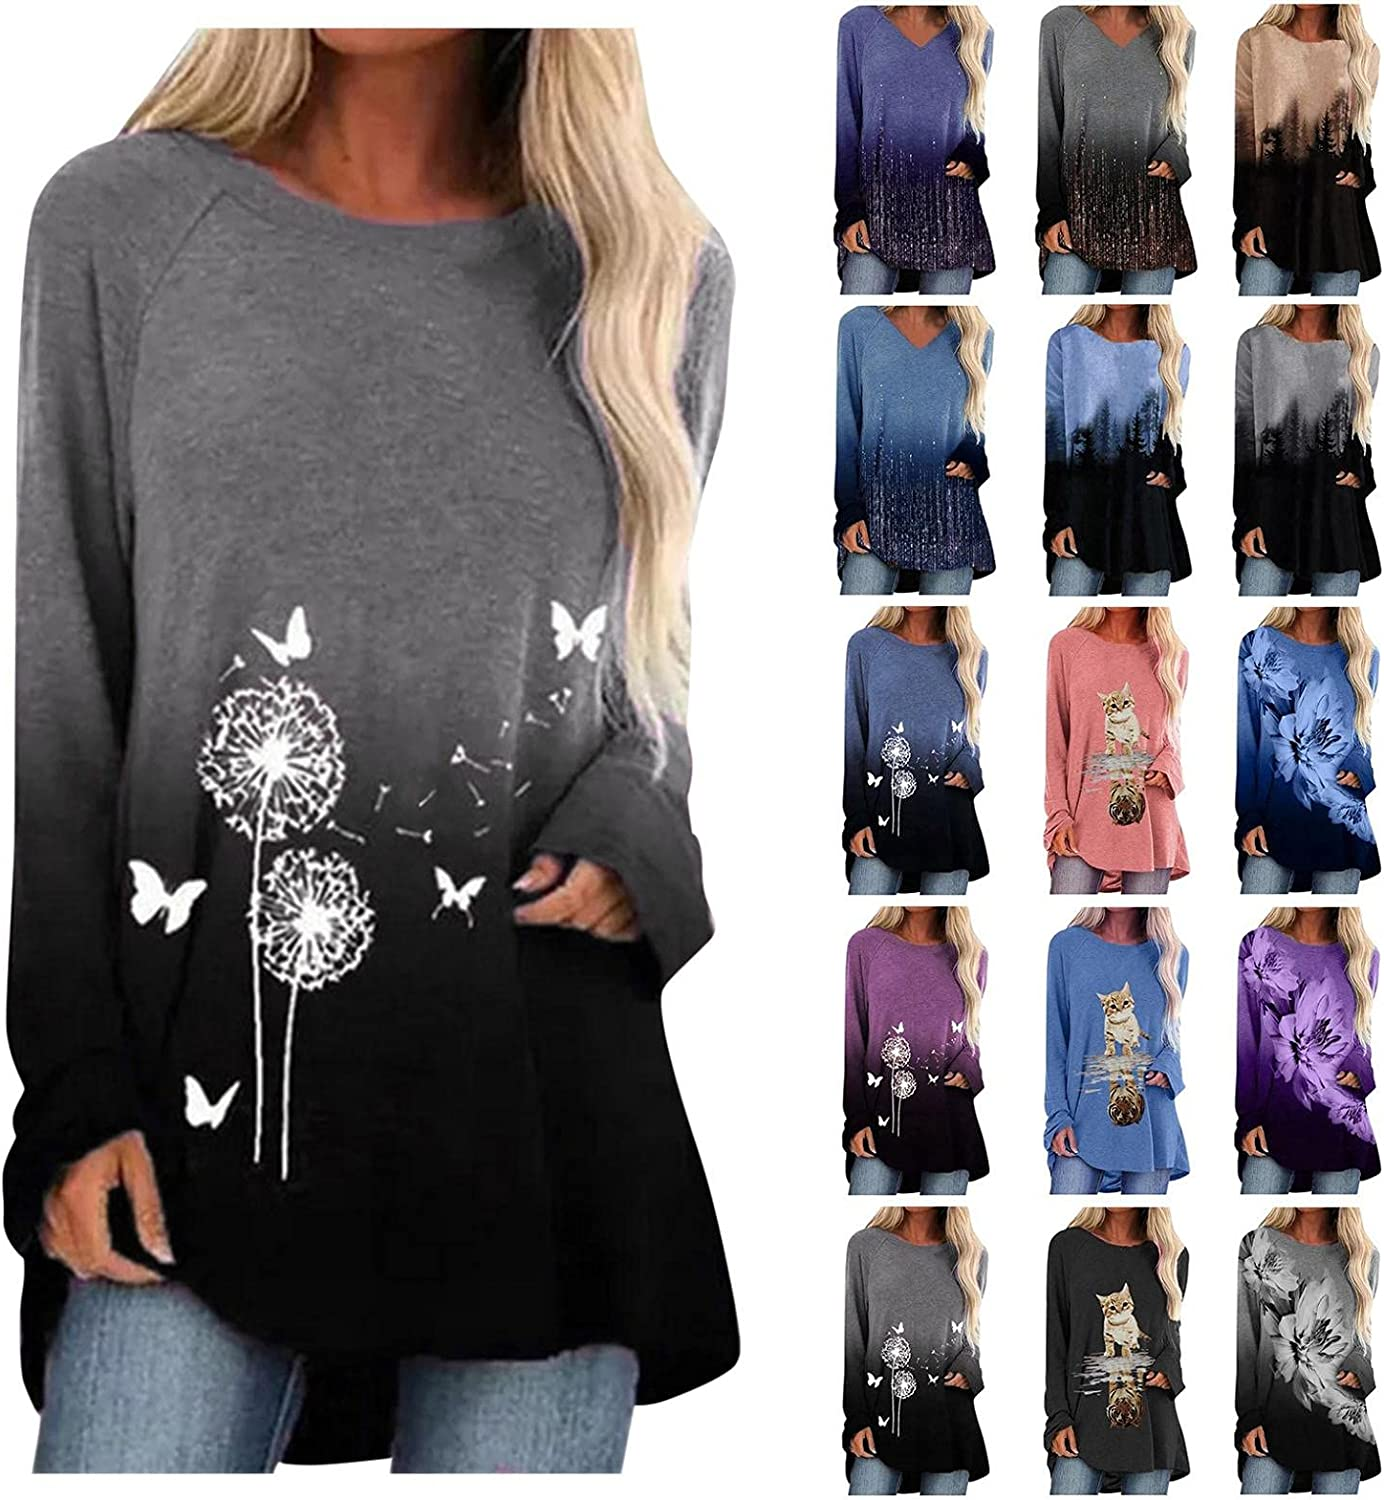 BAGELISE Womens Sweatshirts, Women Pullover Trendy Graphic Floral Print Blouse Long Sleeve Tunic Tops Plus Size Shirts